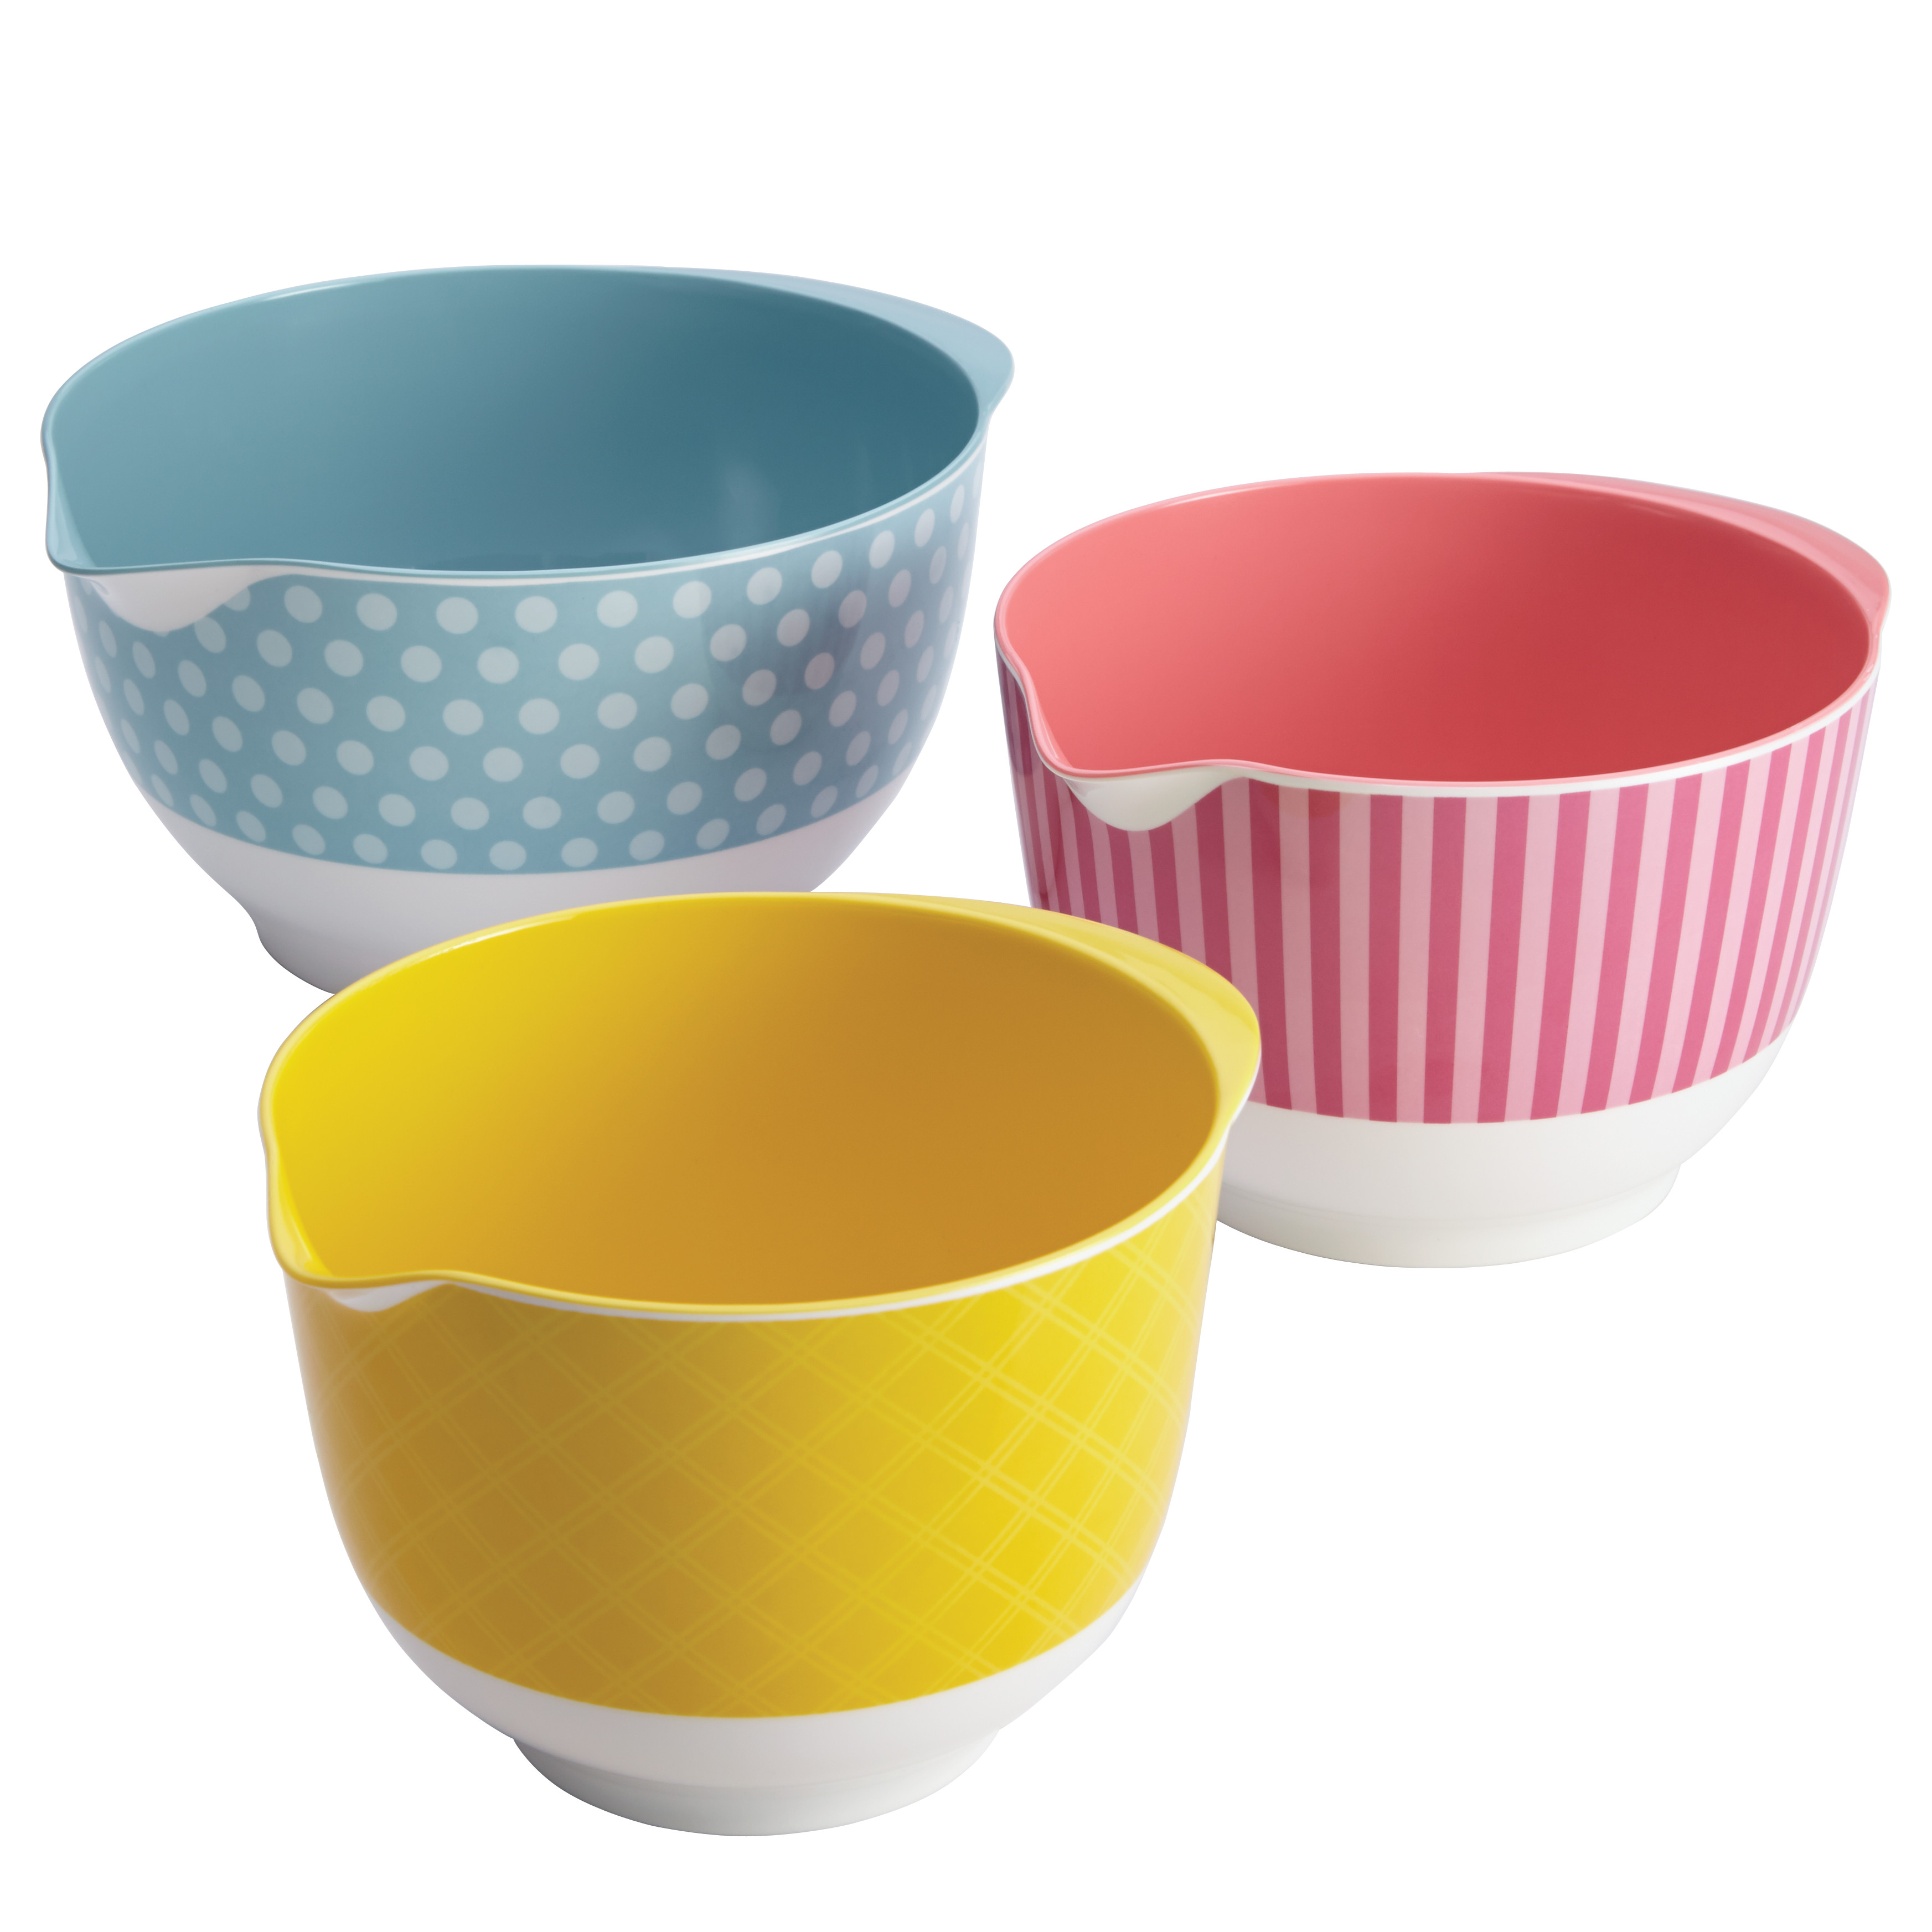 Cake Boss Countertop Accessories 3-Piece Melamine Mixing Bowl Set, Basic Pattern